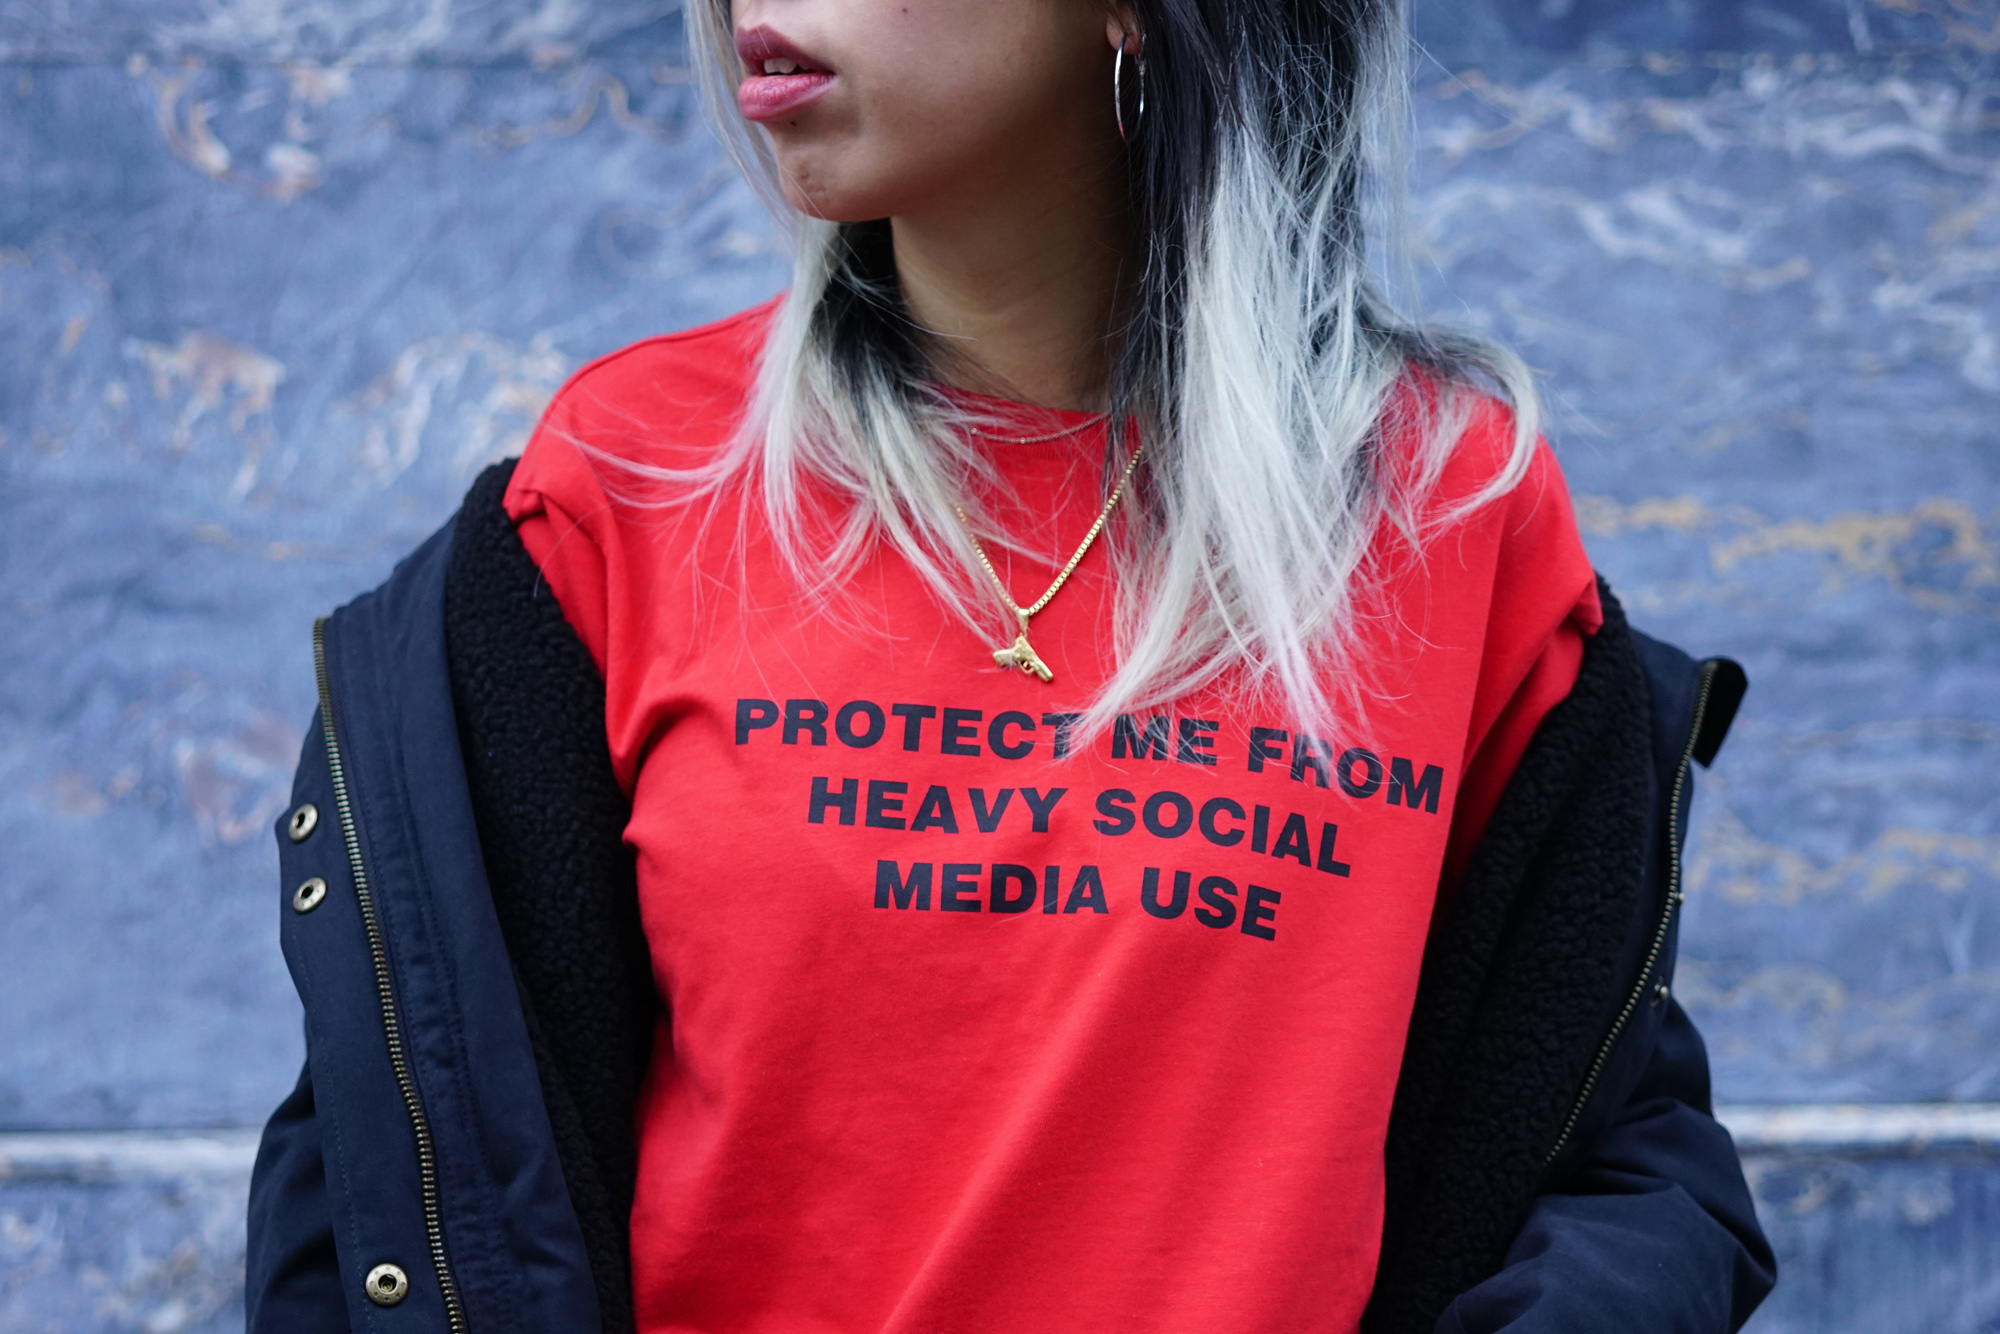 Protect-me-from-heavy-social-media-use-Weekday